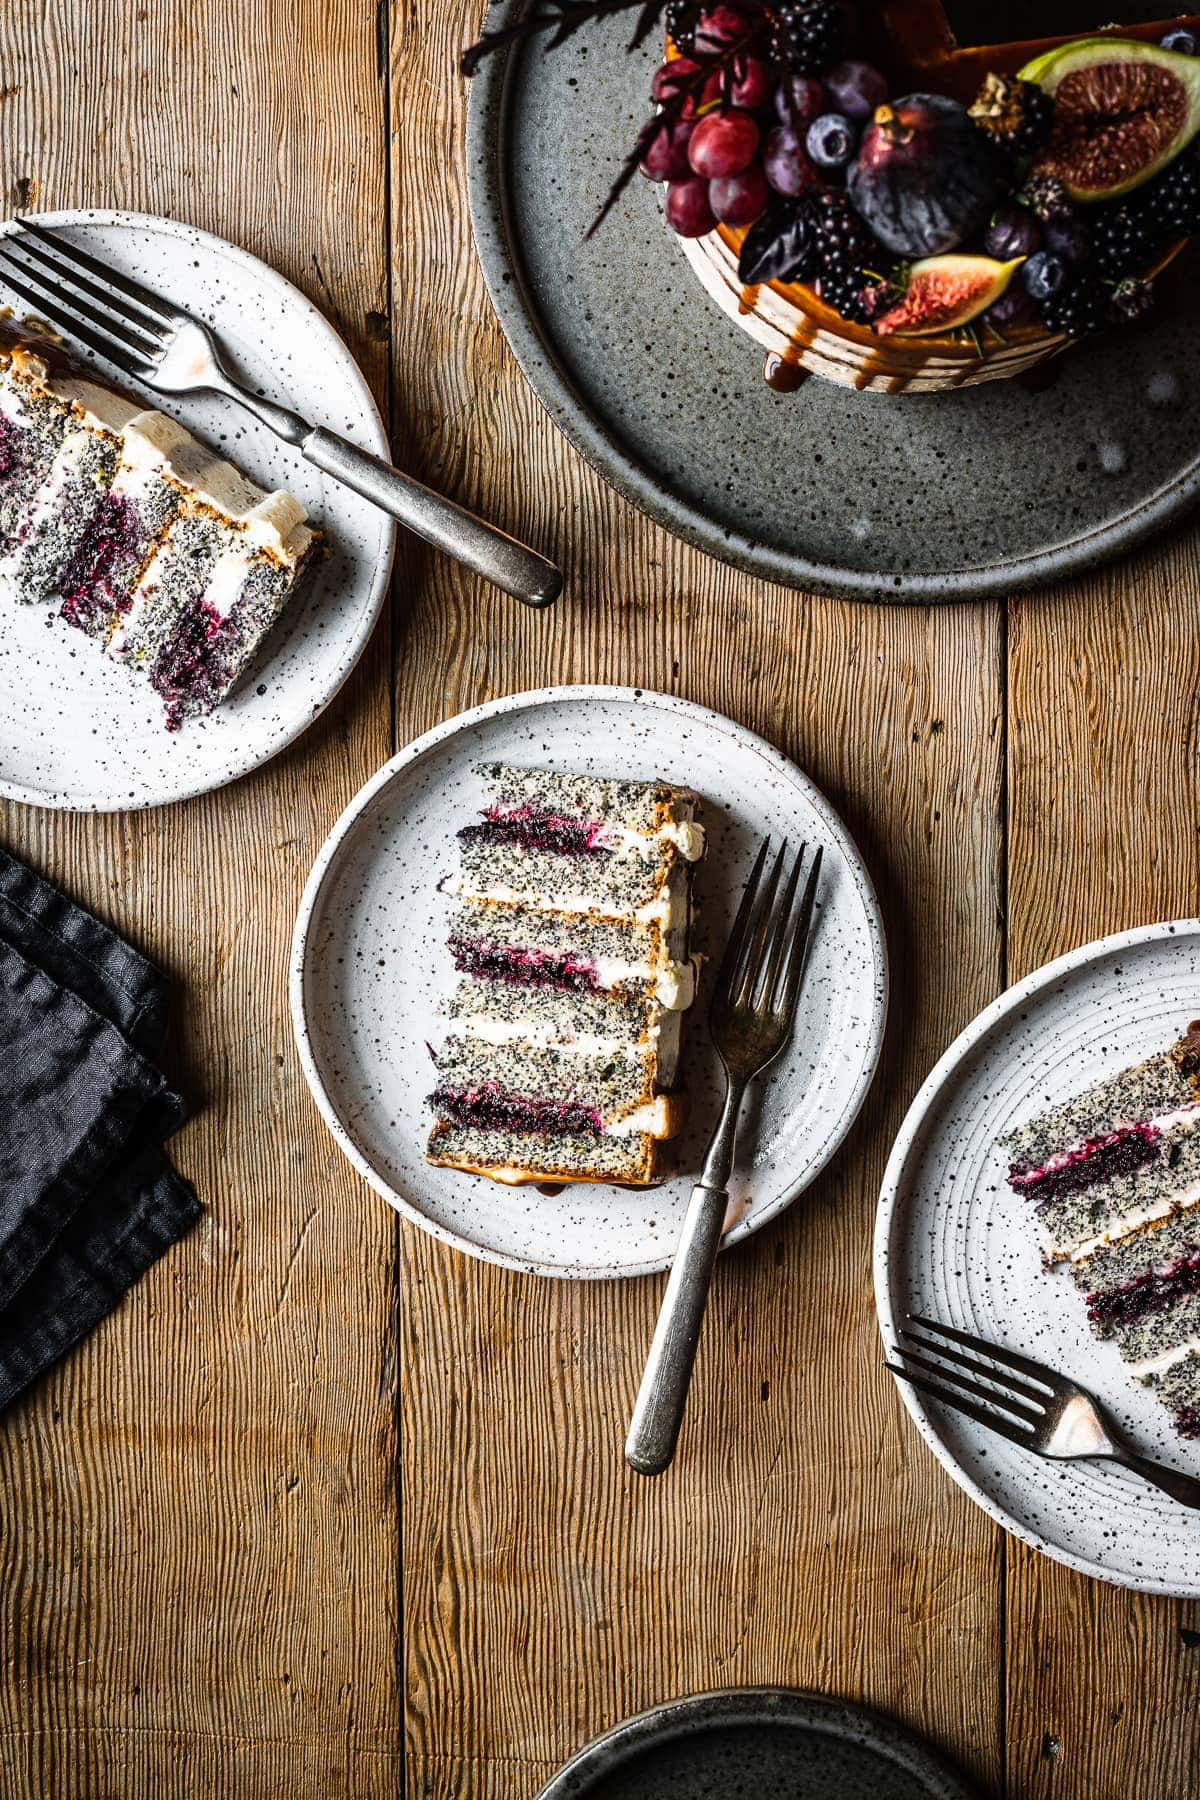 Three speckled white ceramic plates with slices of blackberry poppy seed cake on a rustic wooden table. The rest of the cake, decorated with late summer figs, blackberries, blueberries and grapes, sits on a blue grey ceramic platter at the top right of the image.